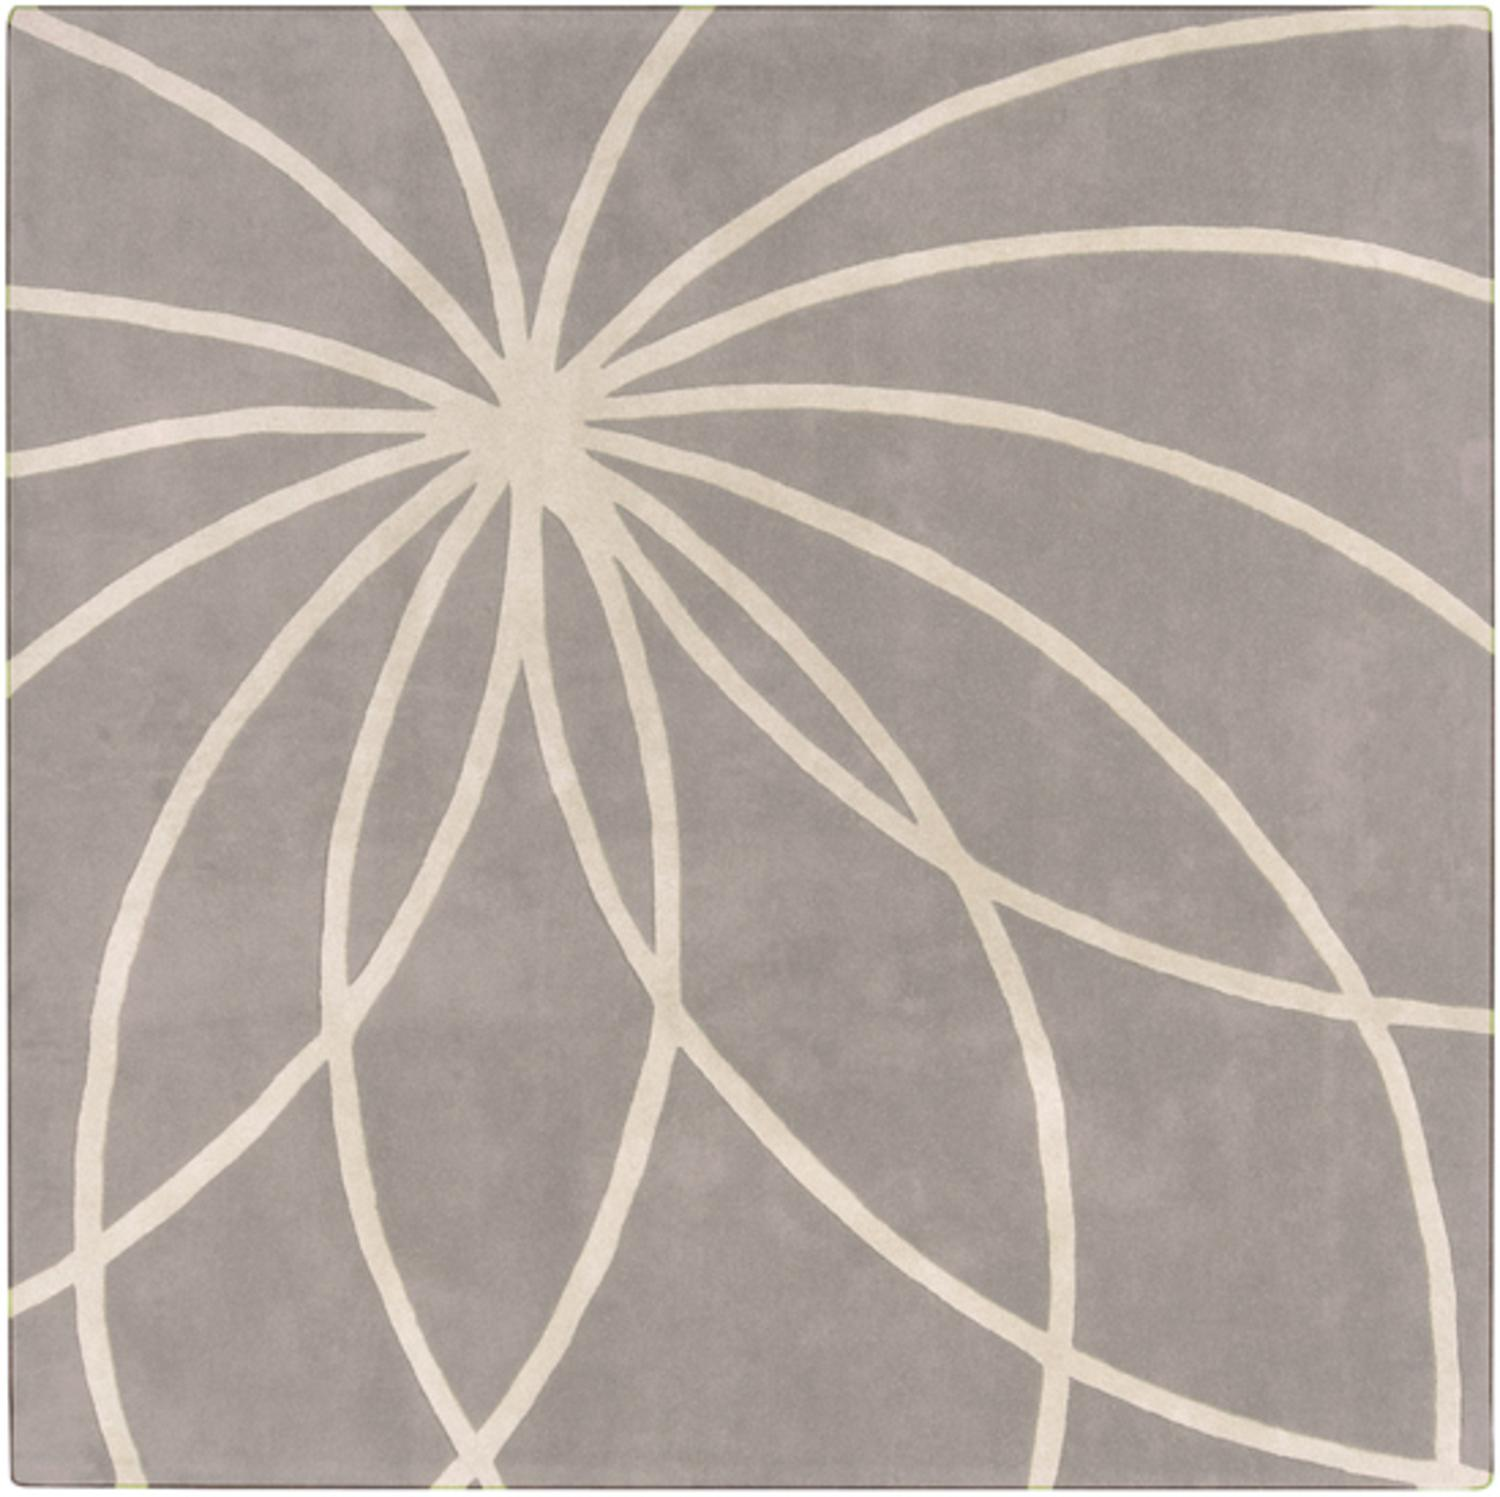 4' x 4' Plasma Elektra White and Gray Hand Tufted Wool Square Area Throw Rug